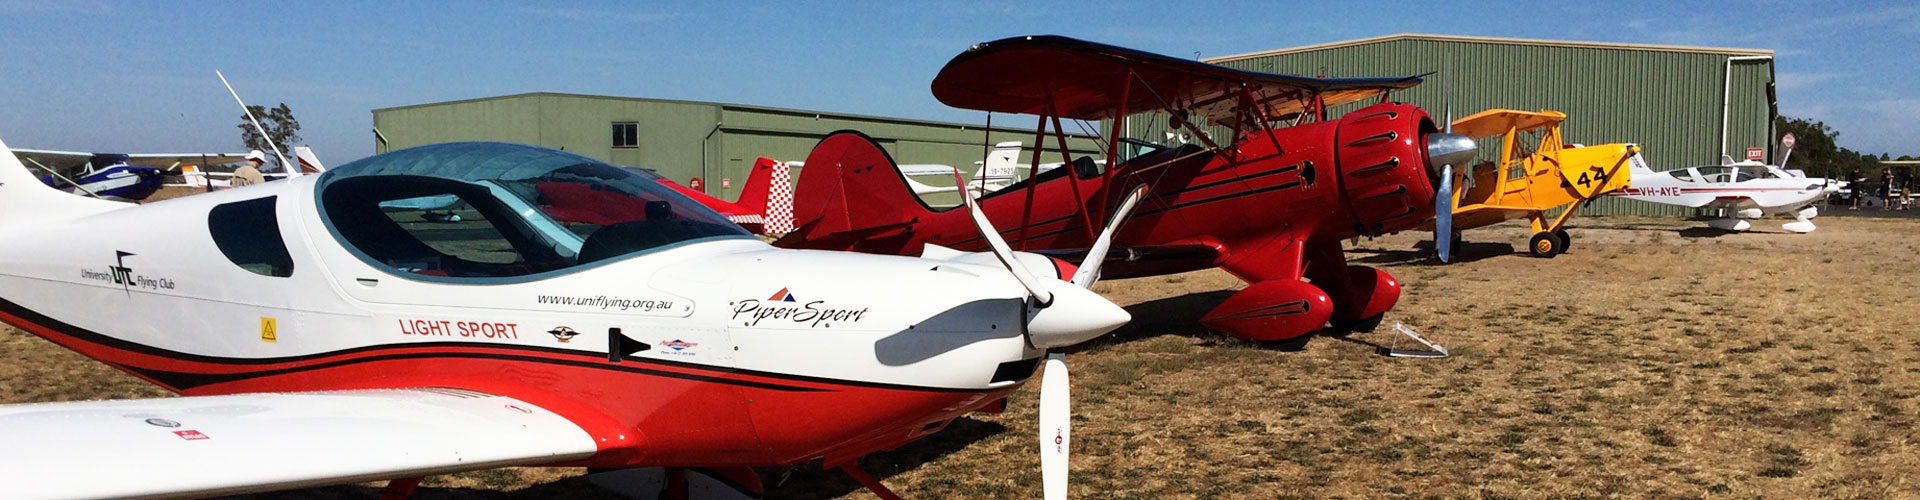 university-flying-club-jandakot-aircraft-hire-flight-training-modern-17